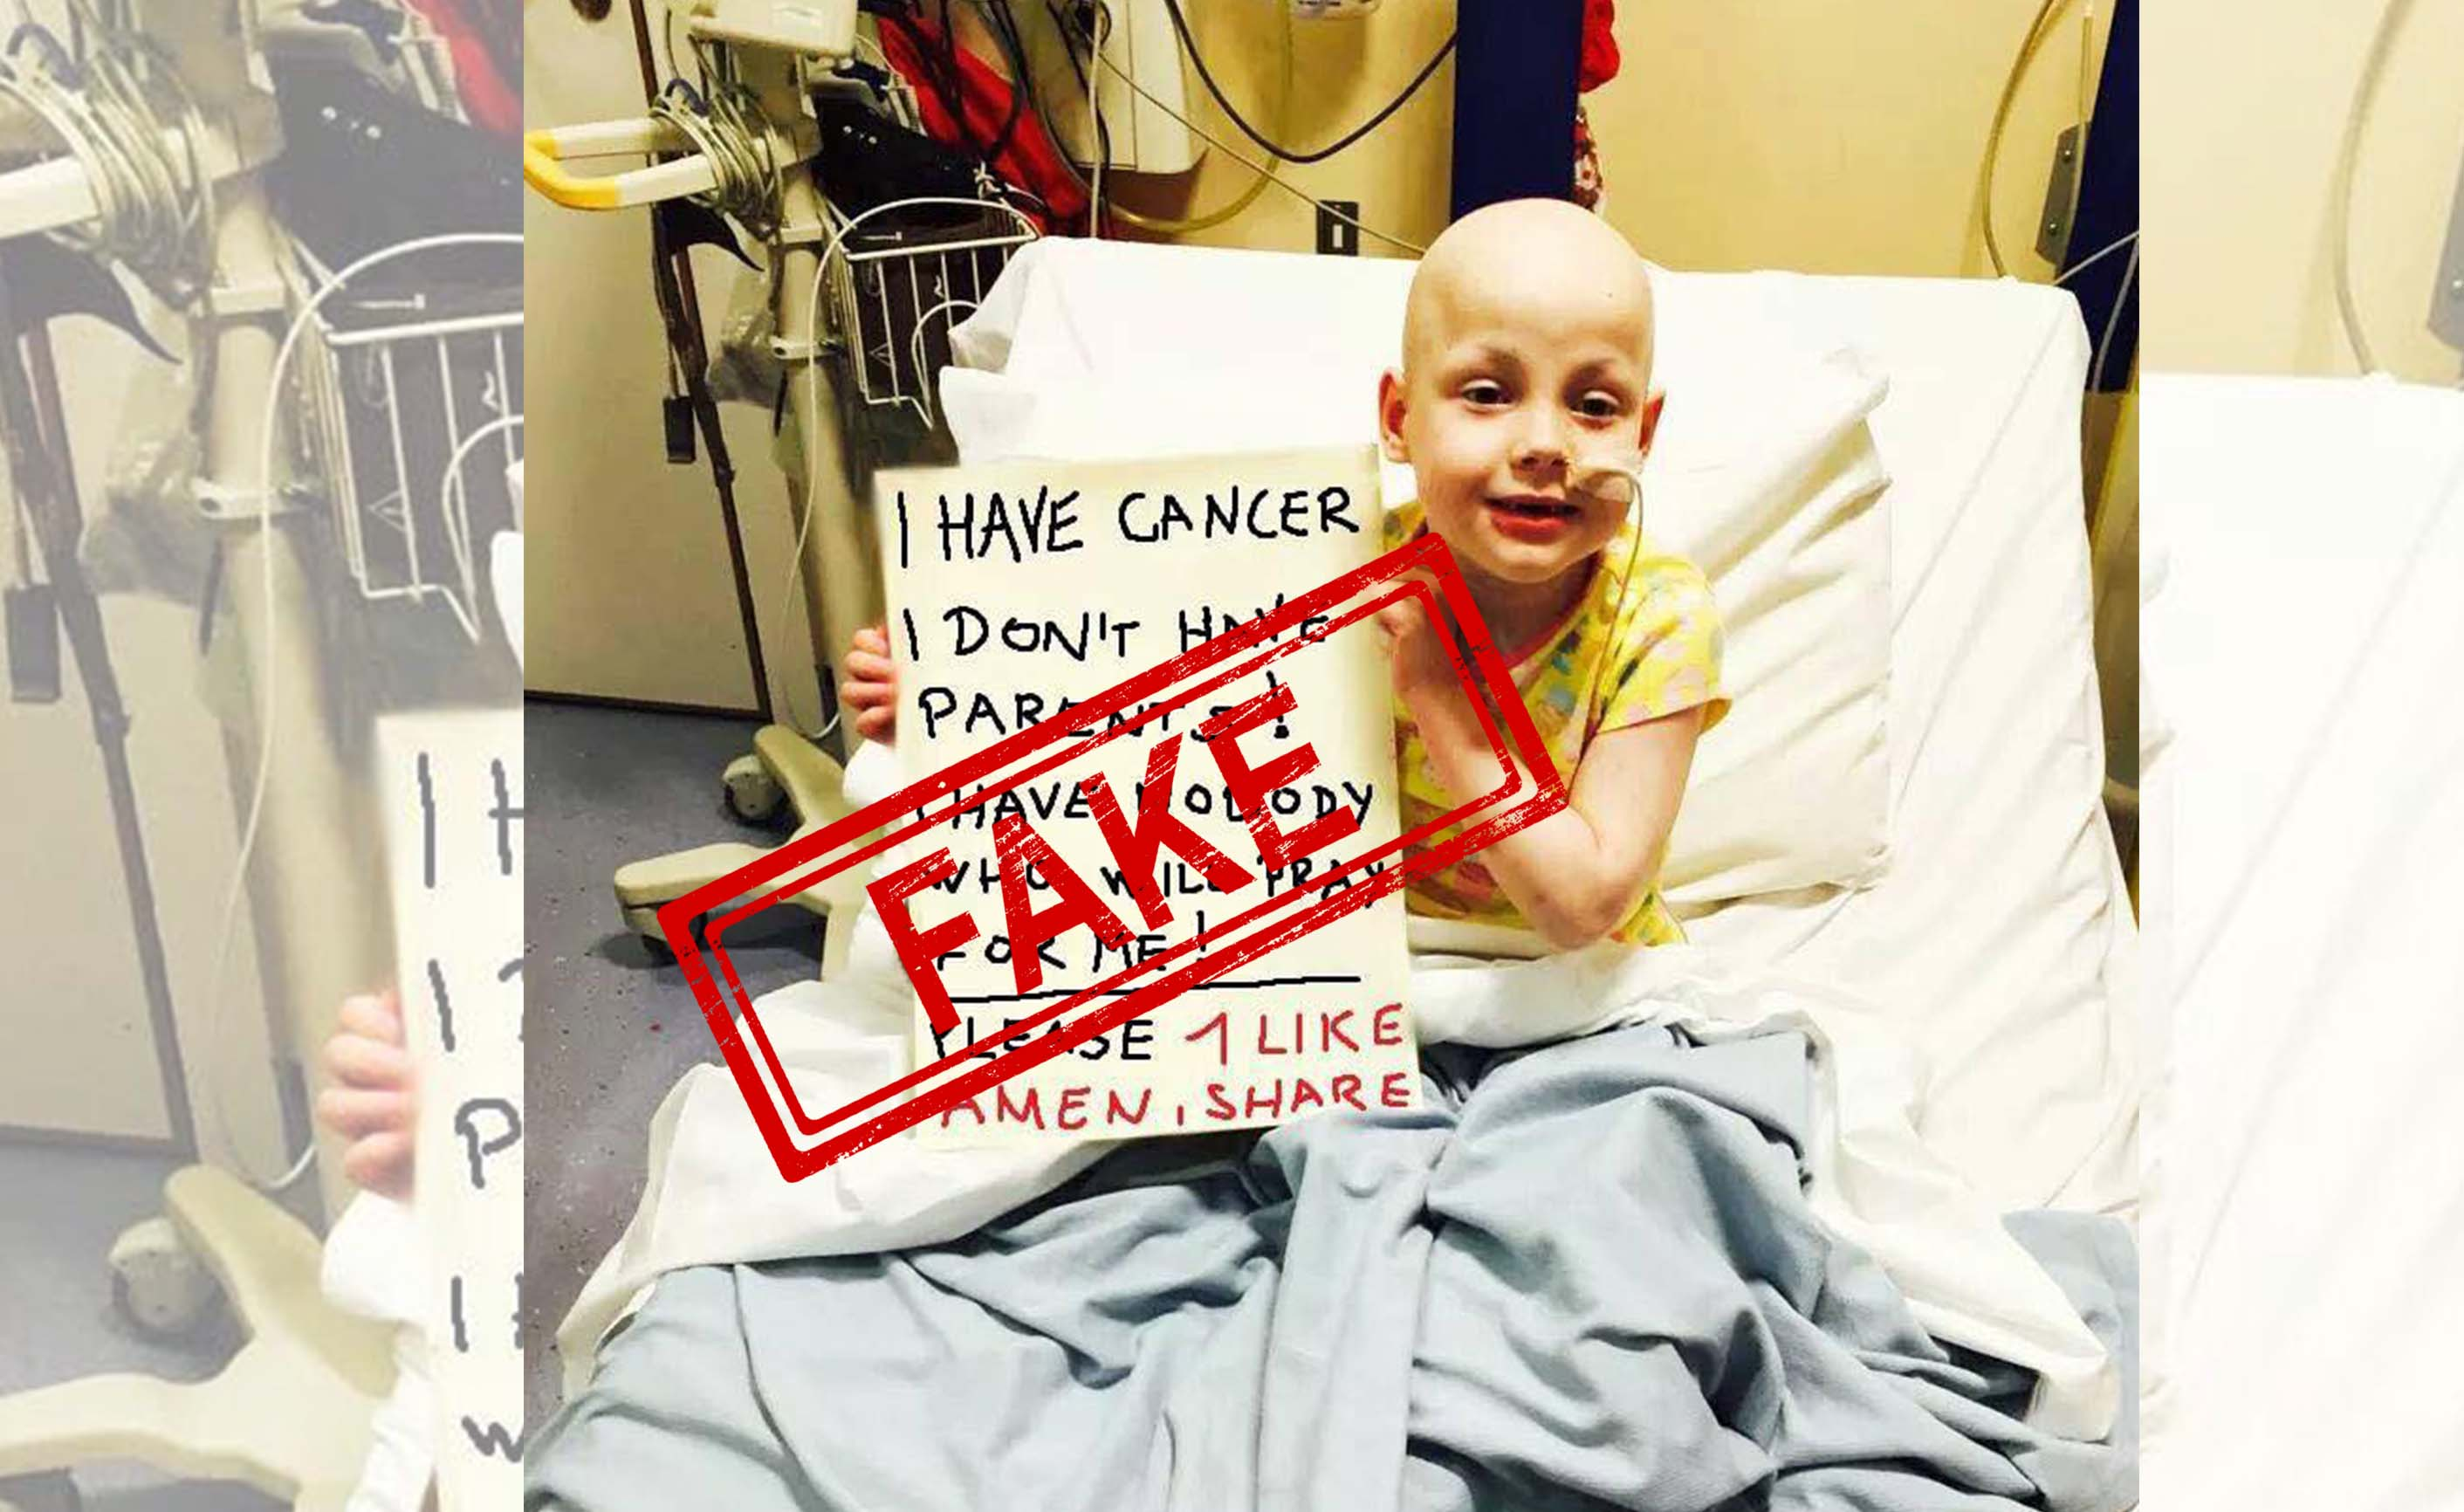 Girl, Six year old, Cancer, NewsMobile, New Zealand, UK, NewsMobile, Mobile, News, India, Fact Check, Fact Checker, Fake